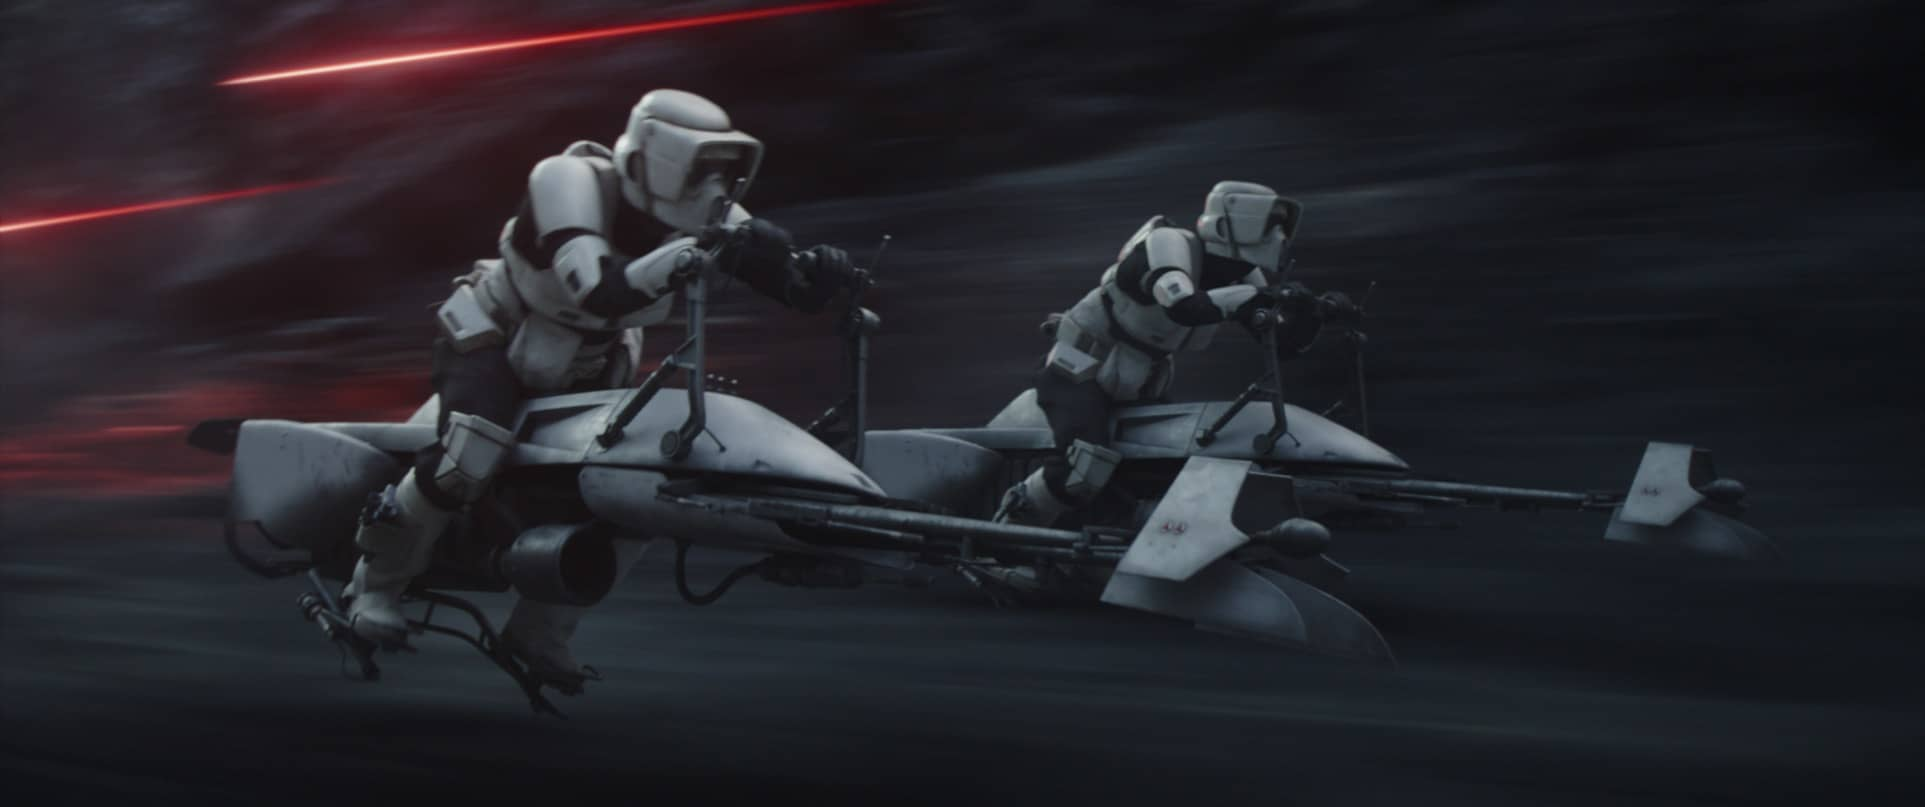 Scout Troopers in Lucasfilm's THE MANDALORIAN, season two, exclusively on Disney+. © 2020 Lucasfilm Ltd. & ™. All Rights Reserved.